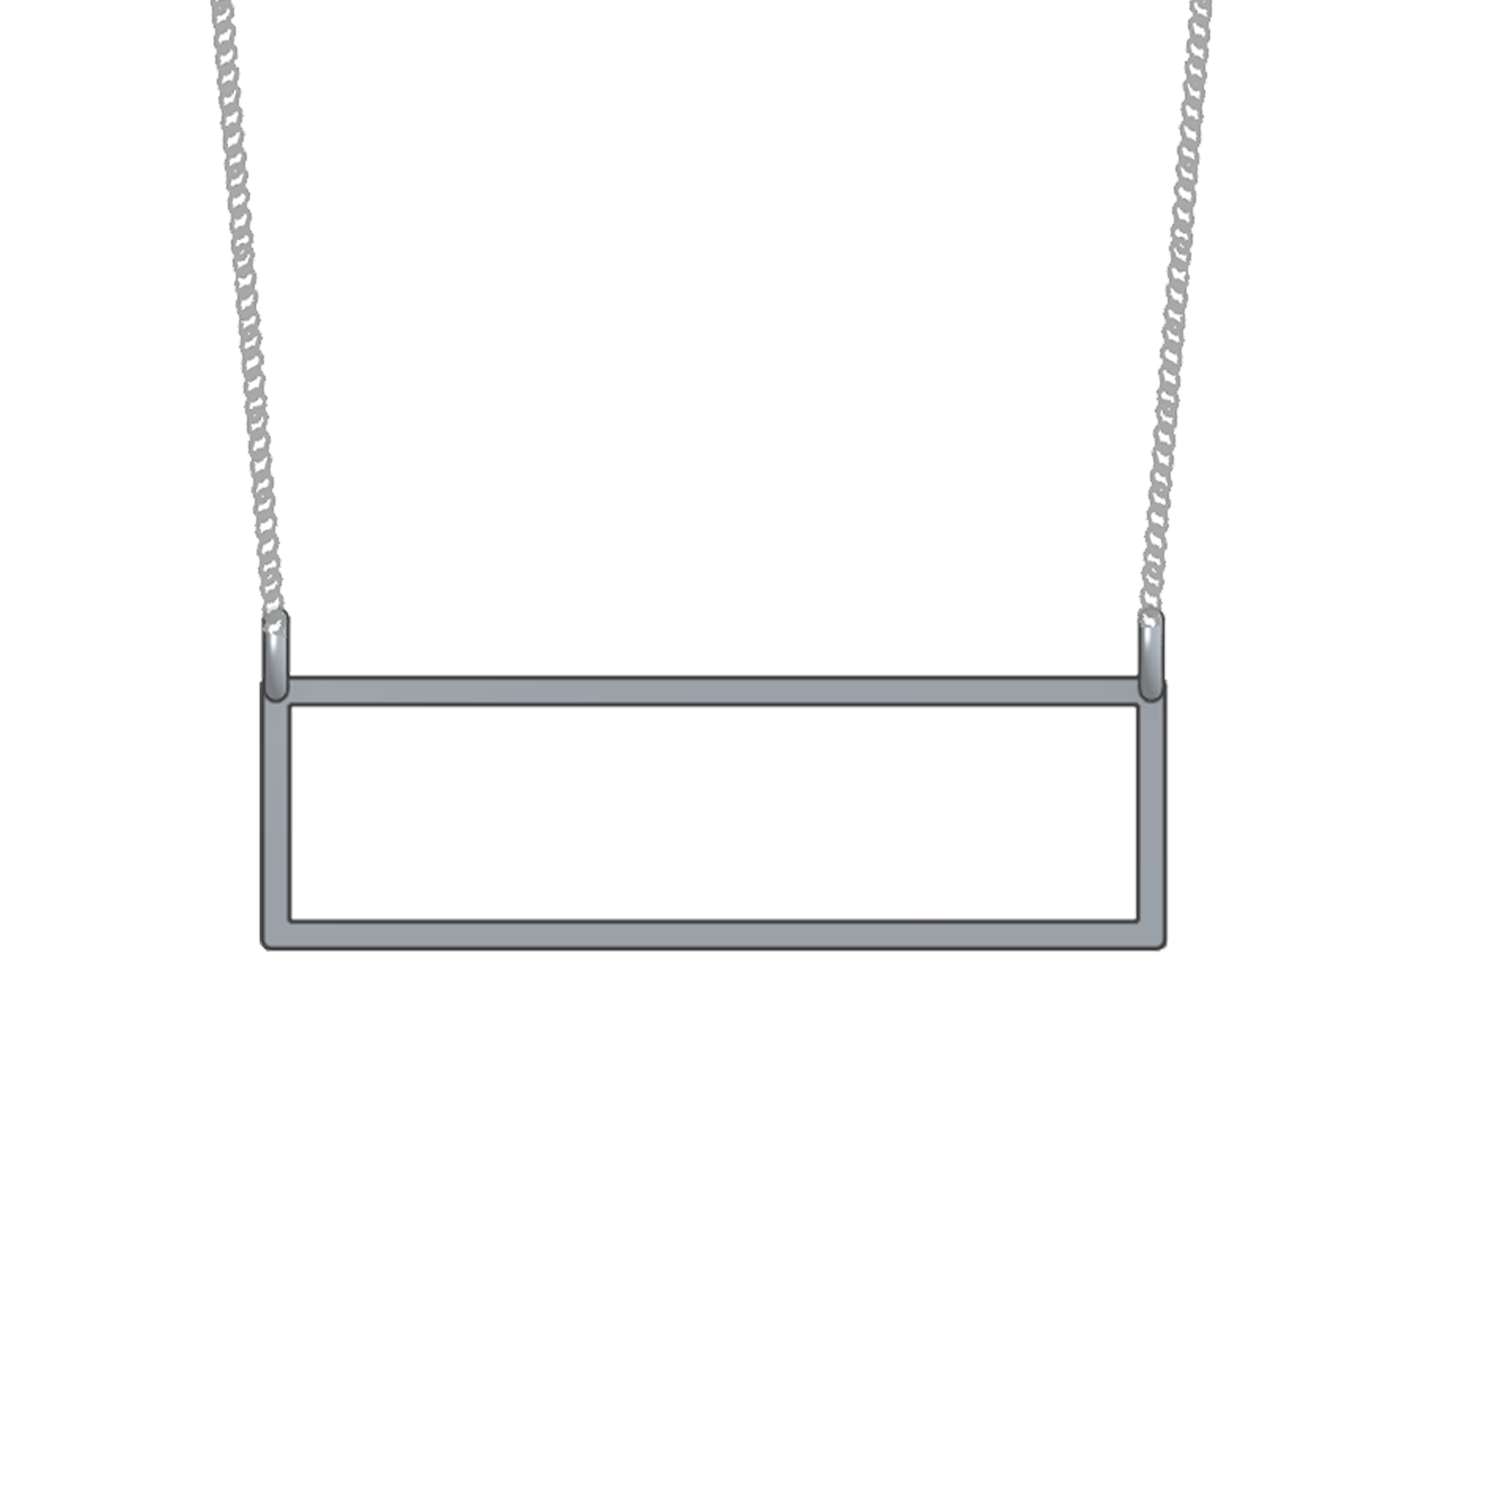 rectangle iconery necklace silver yellow bar or gold horizontal lifestyle products